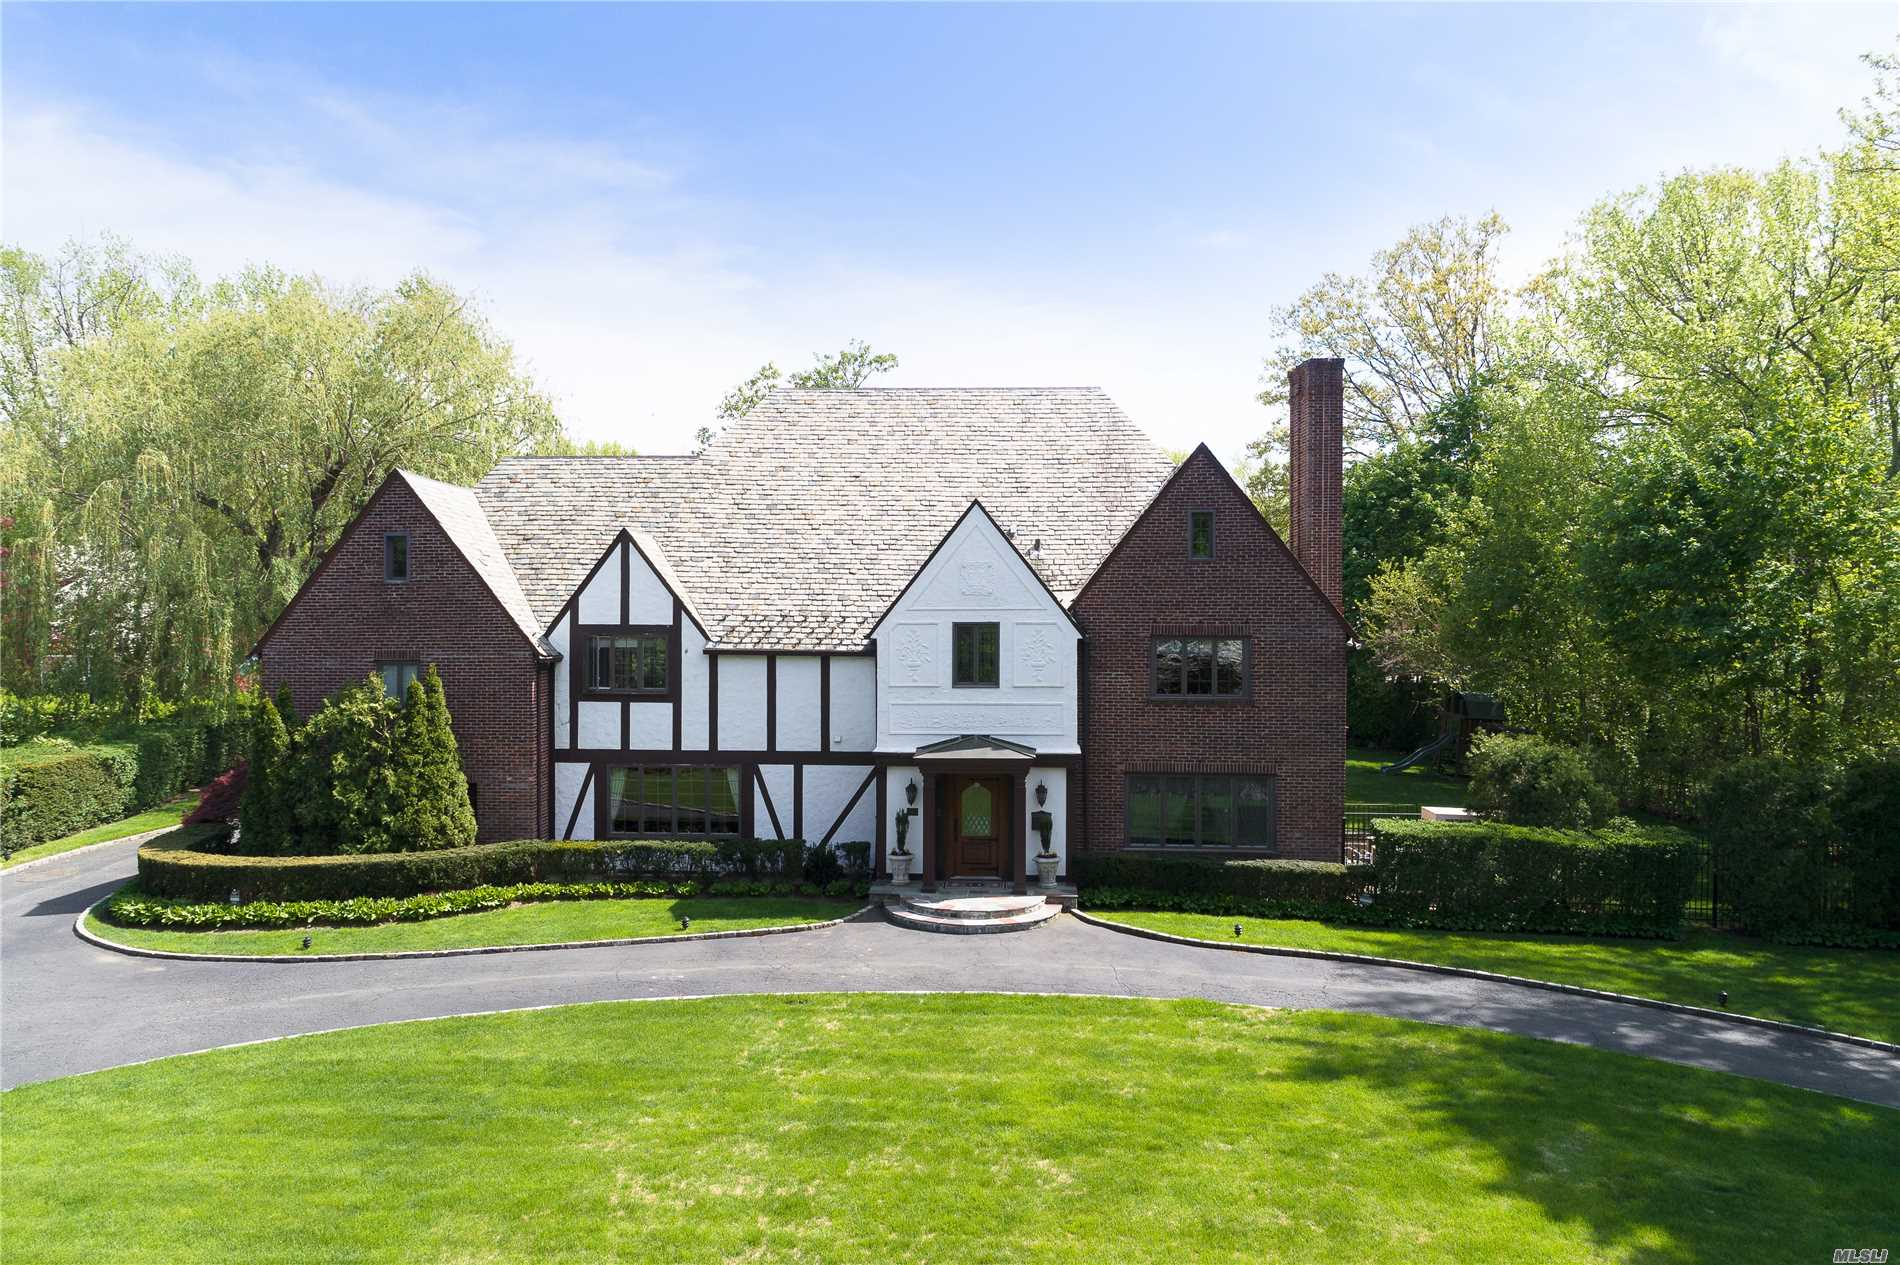 Move-In To This Majestic, Spectacular & Immaculate Tudor All Remodeled And Built For Fabulous Entertaining And Family Living. Newly Added Den And Mudroom Area. Full Finished Basement W/Maid's Rm And Bath. Complete With Inground Pool, Generator & 2-Car Garage.